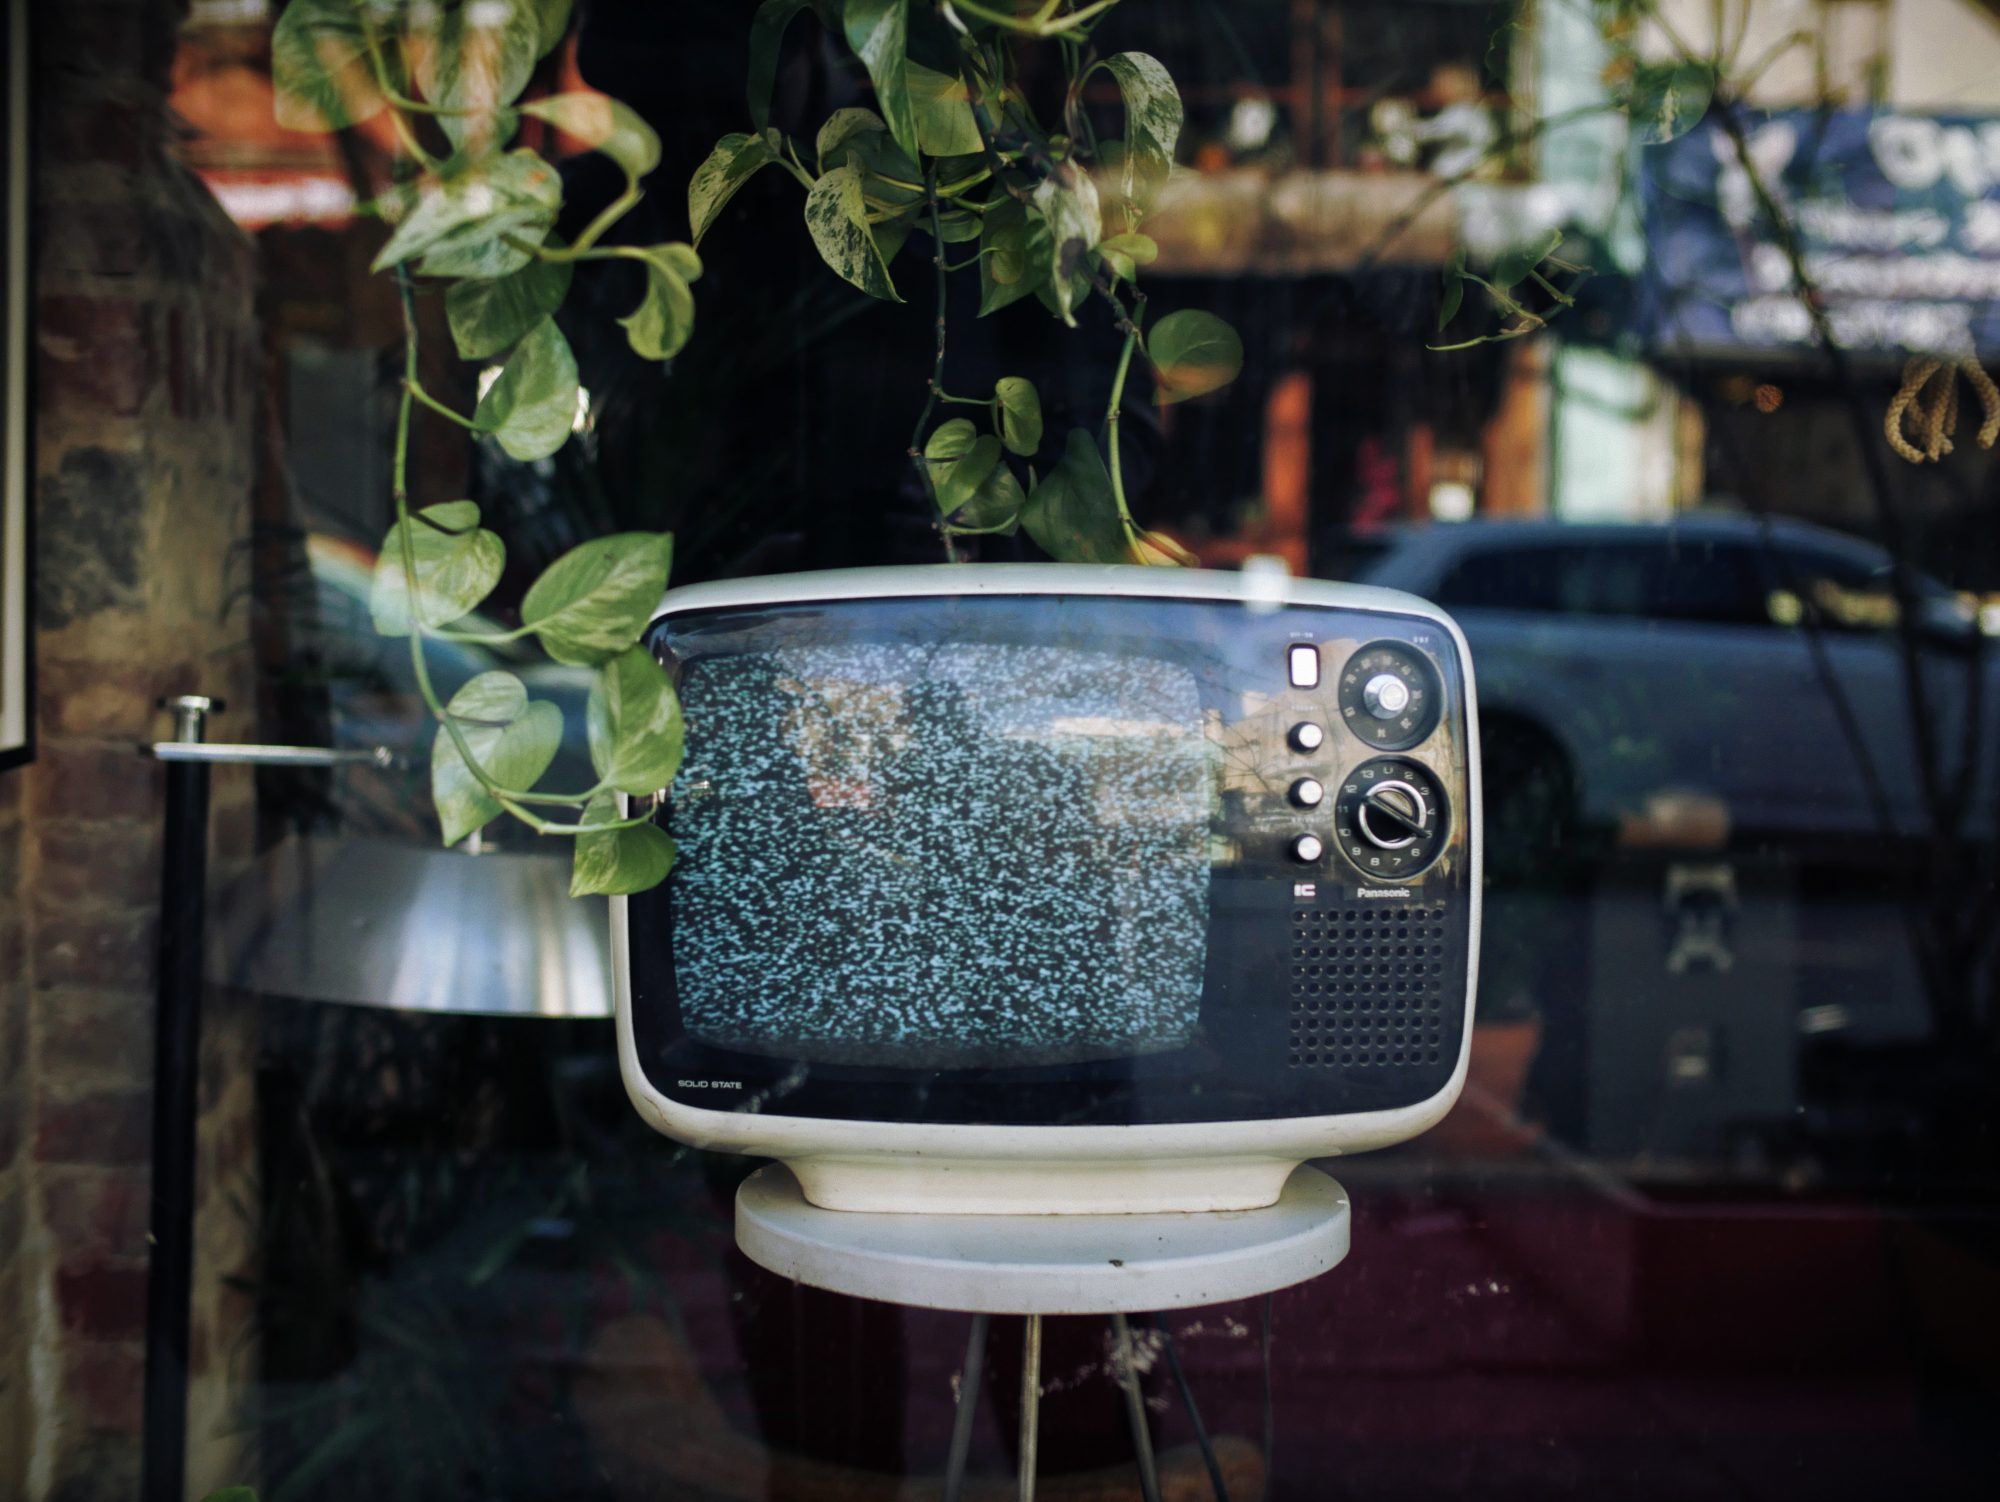 A picture of an old tv showing static - Photo by Patrick Tomasso on Unsplash